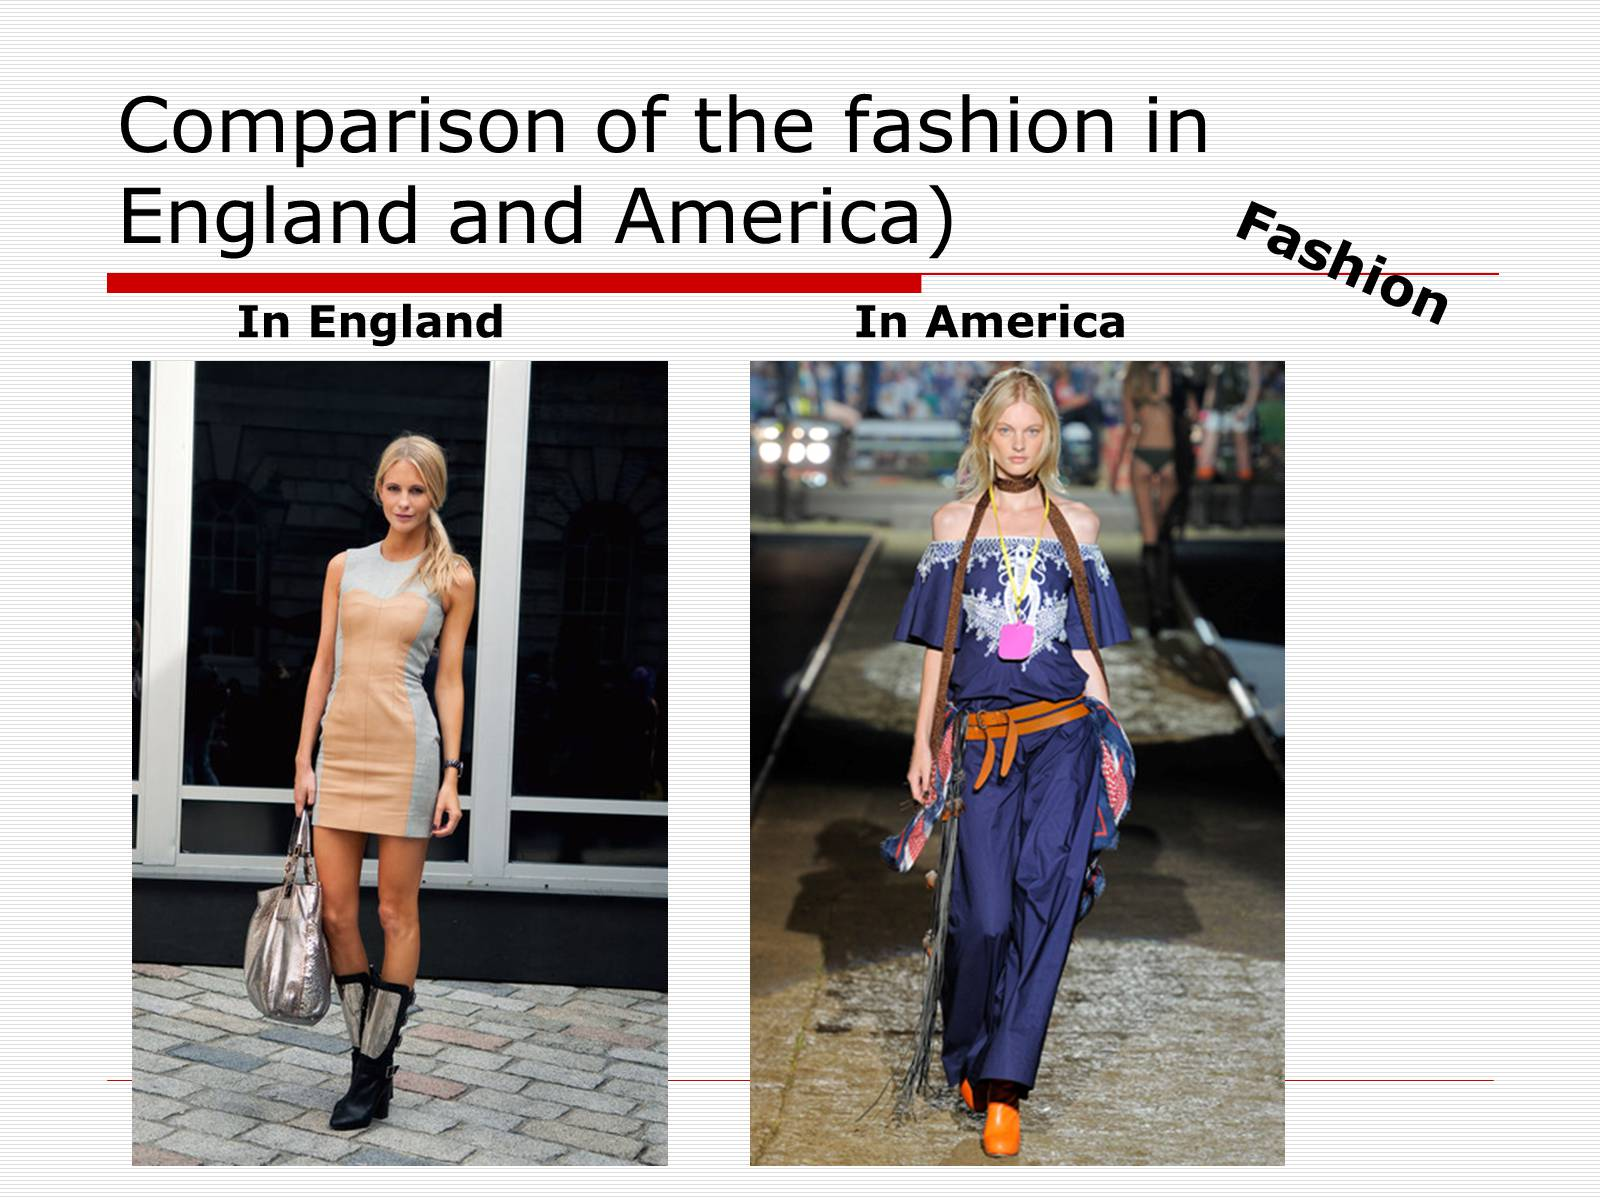 Презентація на тему «Comparison of the fashion in England and America» - Слайд #17